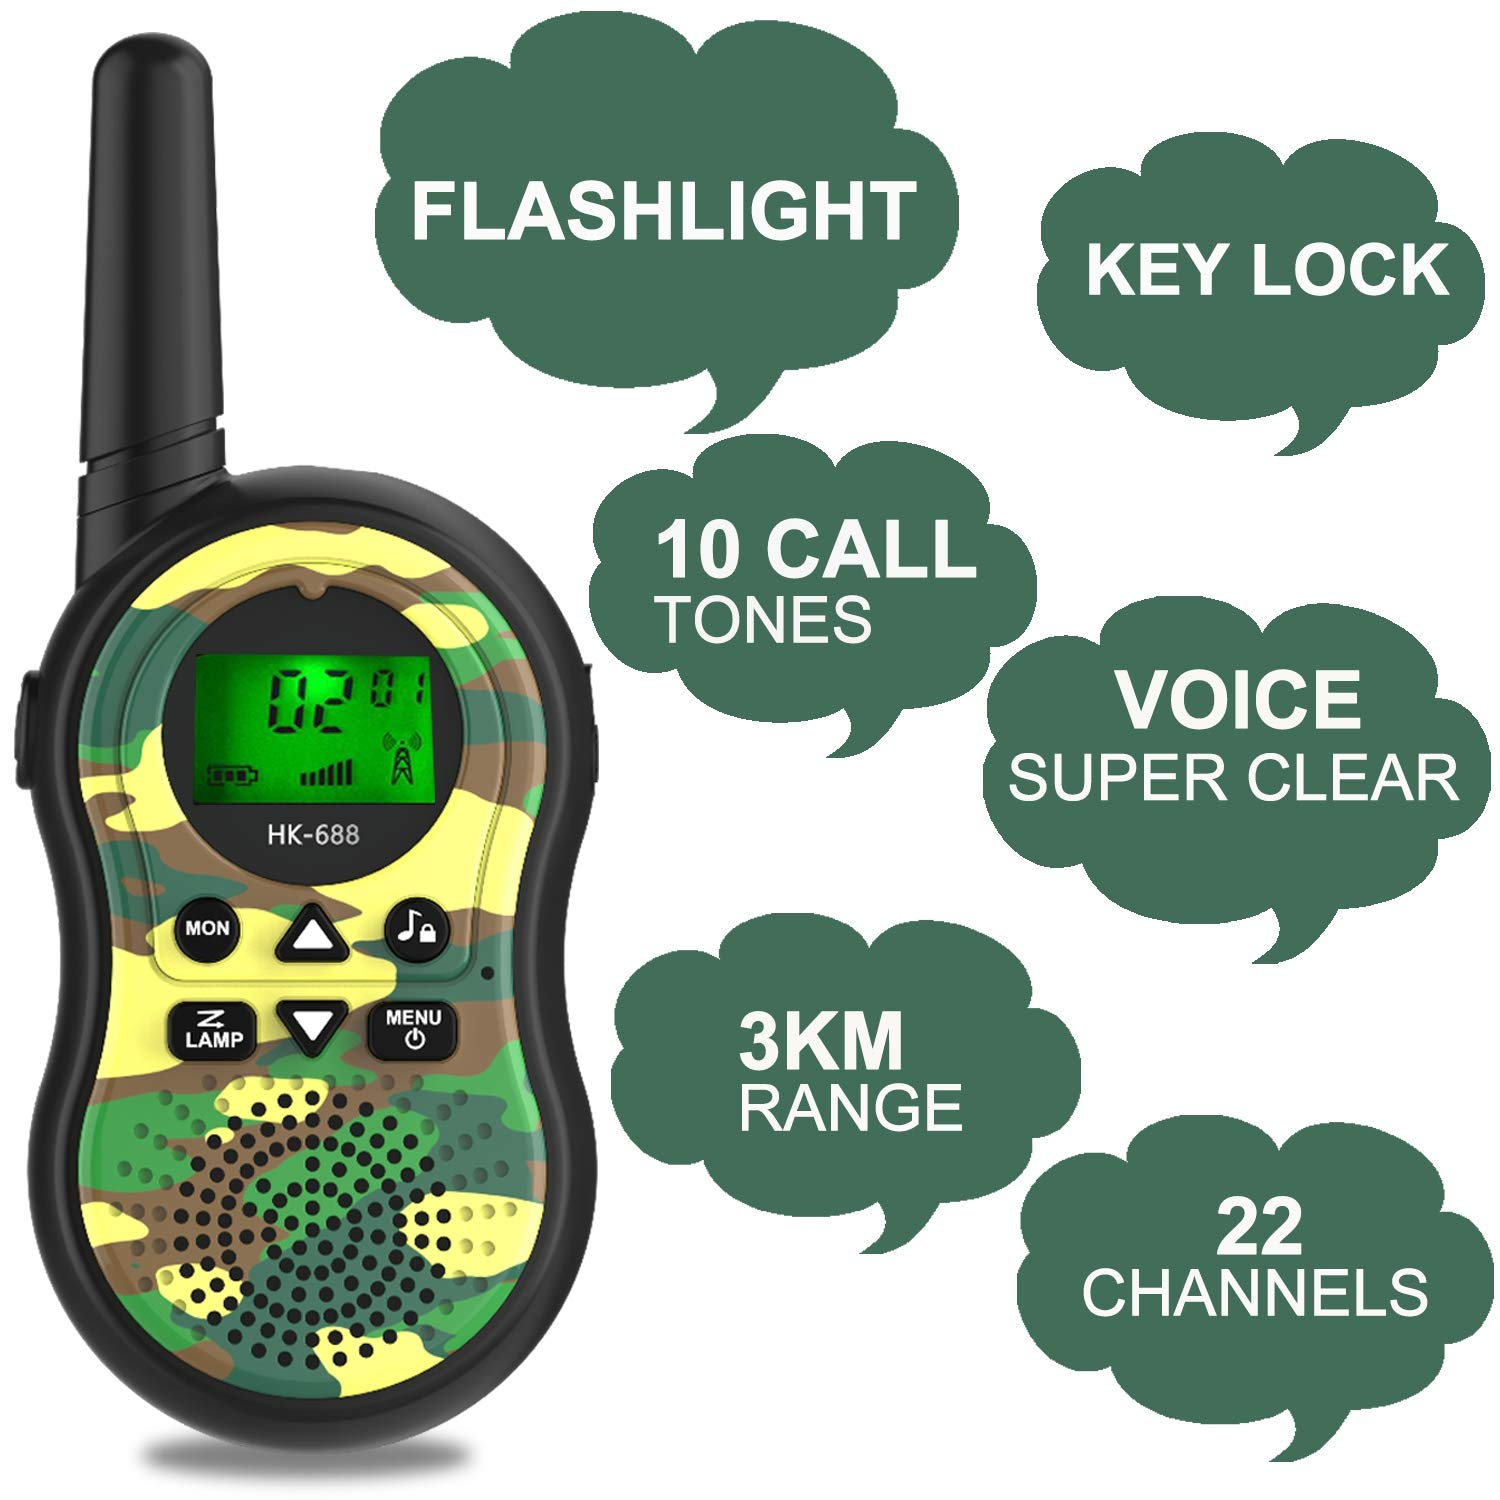 GreaSmart Kids Walkie Talkies,6 Pack 22 Channels Two Way Radio Long Range Kids Toys & Handheld Walkie Talkie with LCD Flashlight Best Gifts for Boy Girls Family Back to Shool Game Outdoor Adventures by GreaSmart (Image #4)